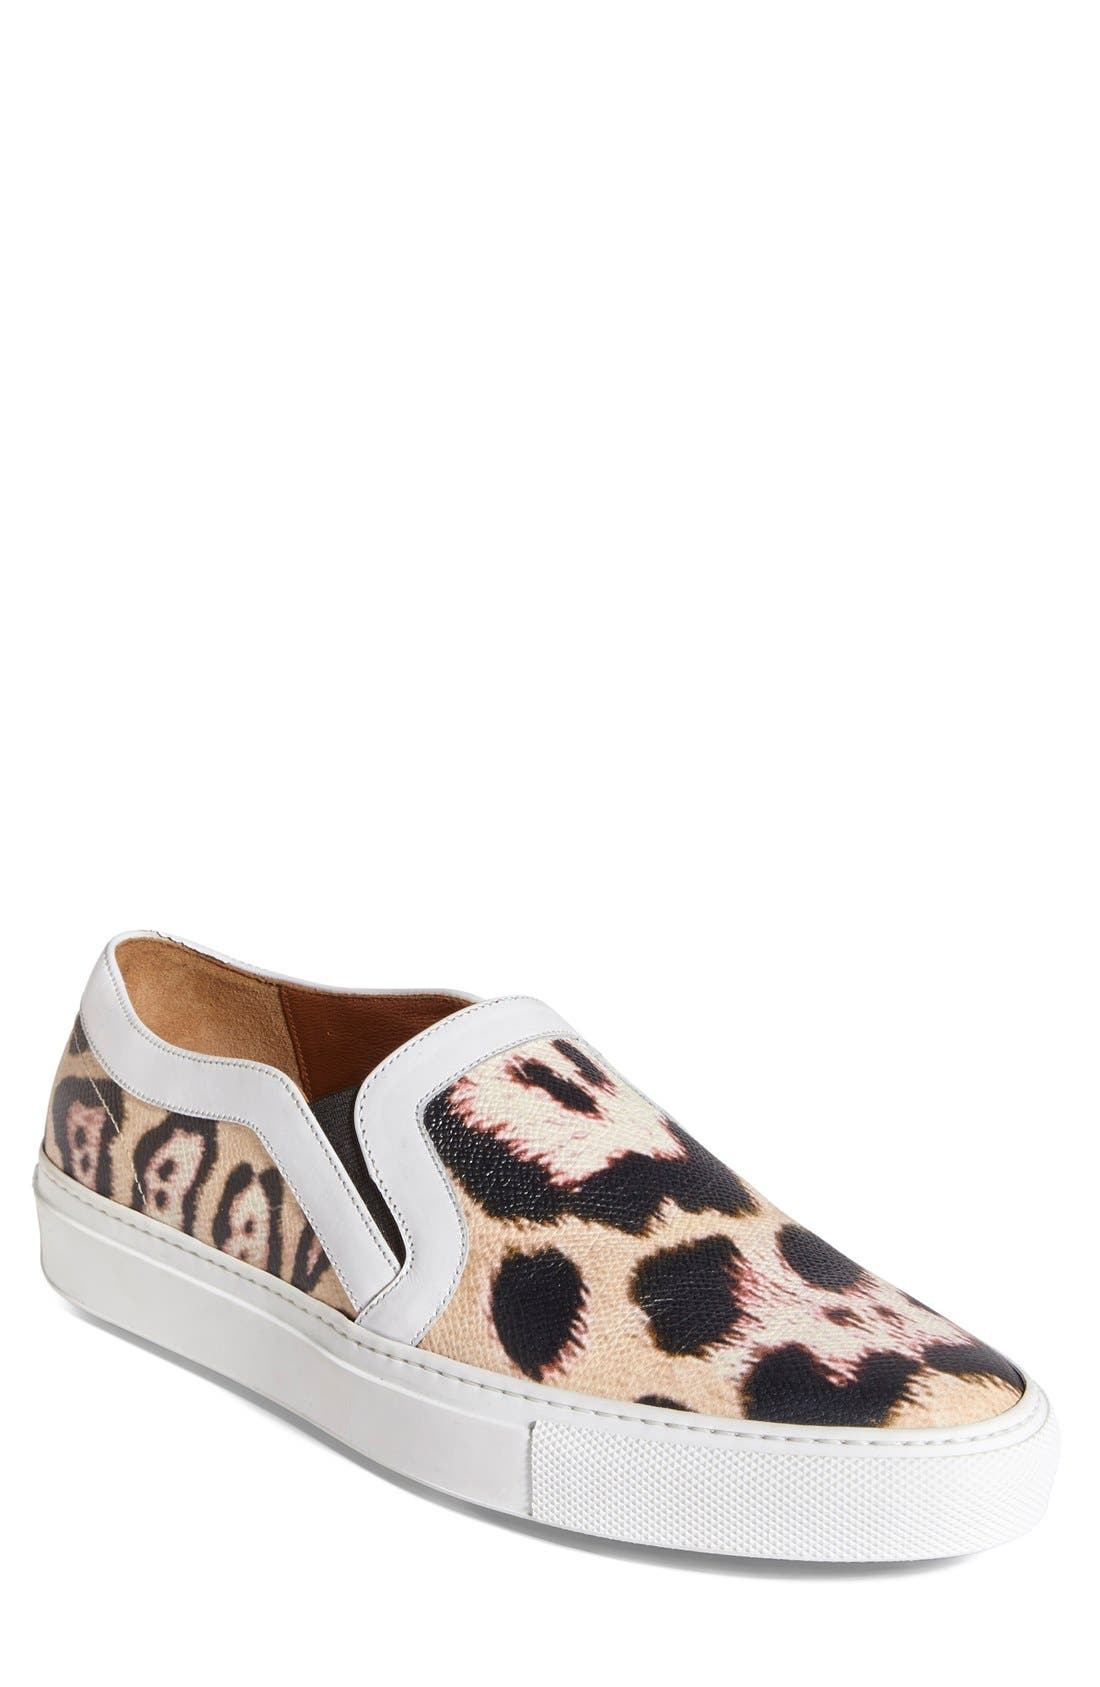 Alternate Image 1 Selected - Givenchy Leopard Print Skate Slip-On Sneaker (Women)